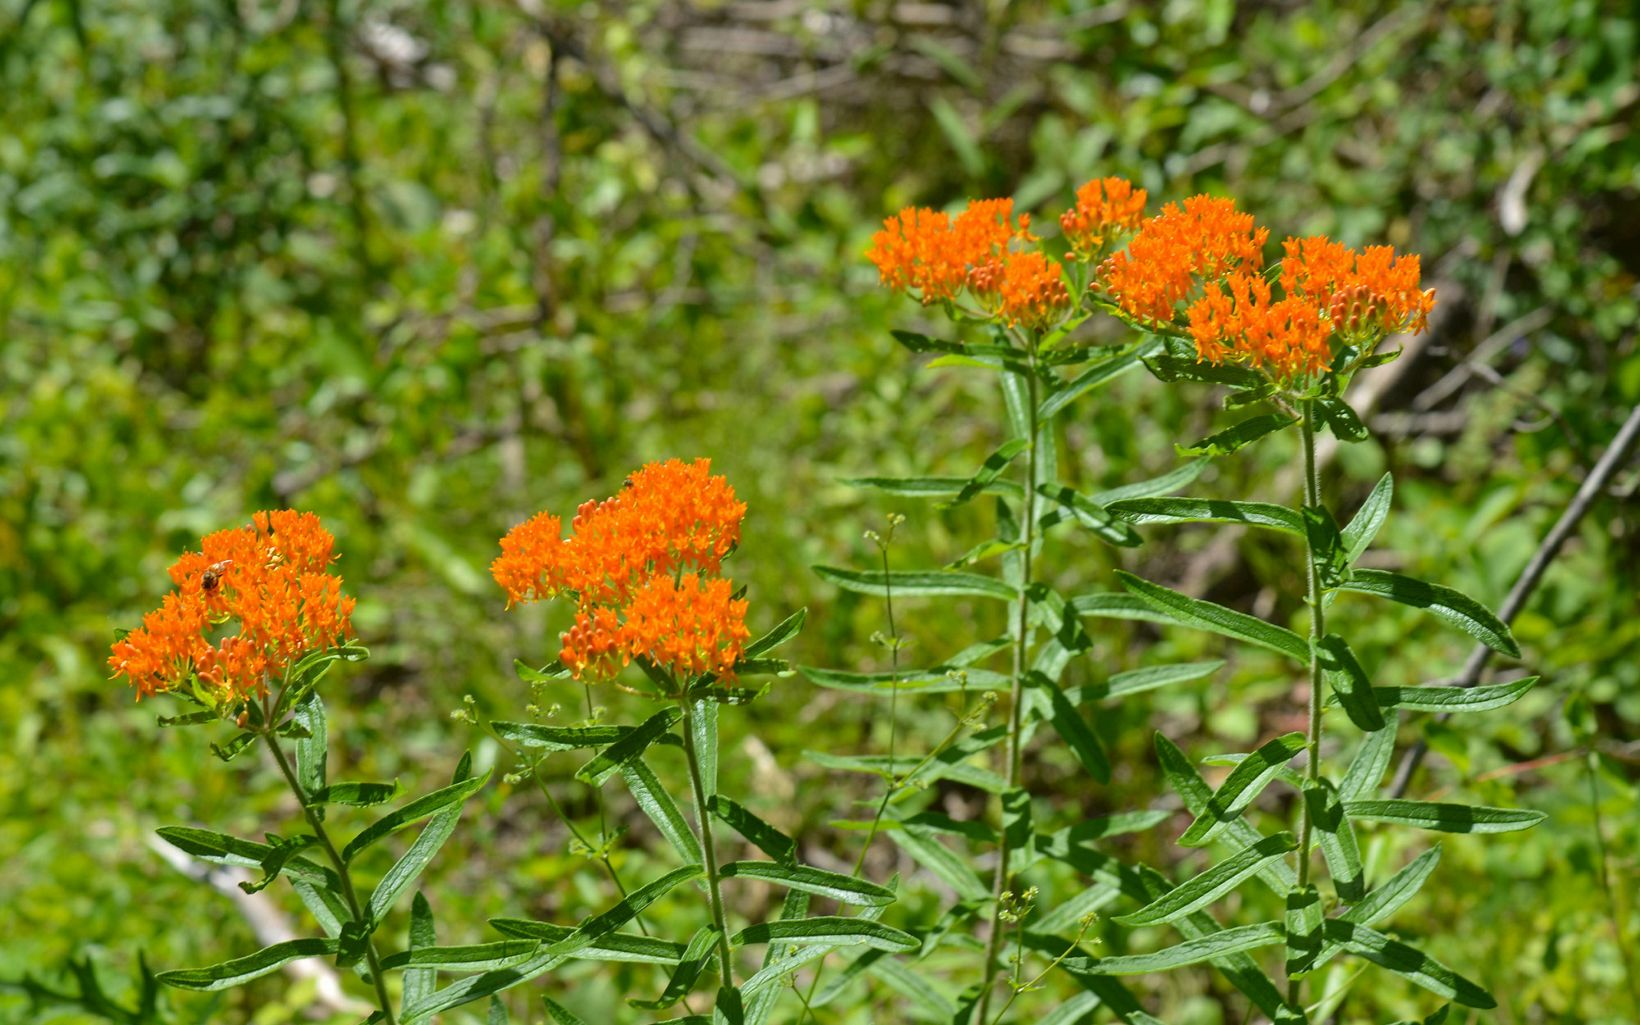 Wildflowers abound in the prairie remnants and the woodland areas in spring through summer like this butterfly weed (Asclepias tuberosa).